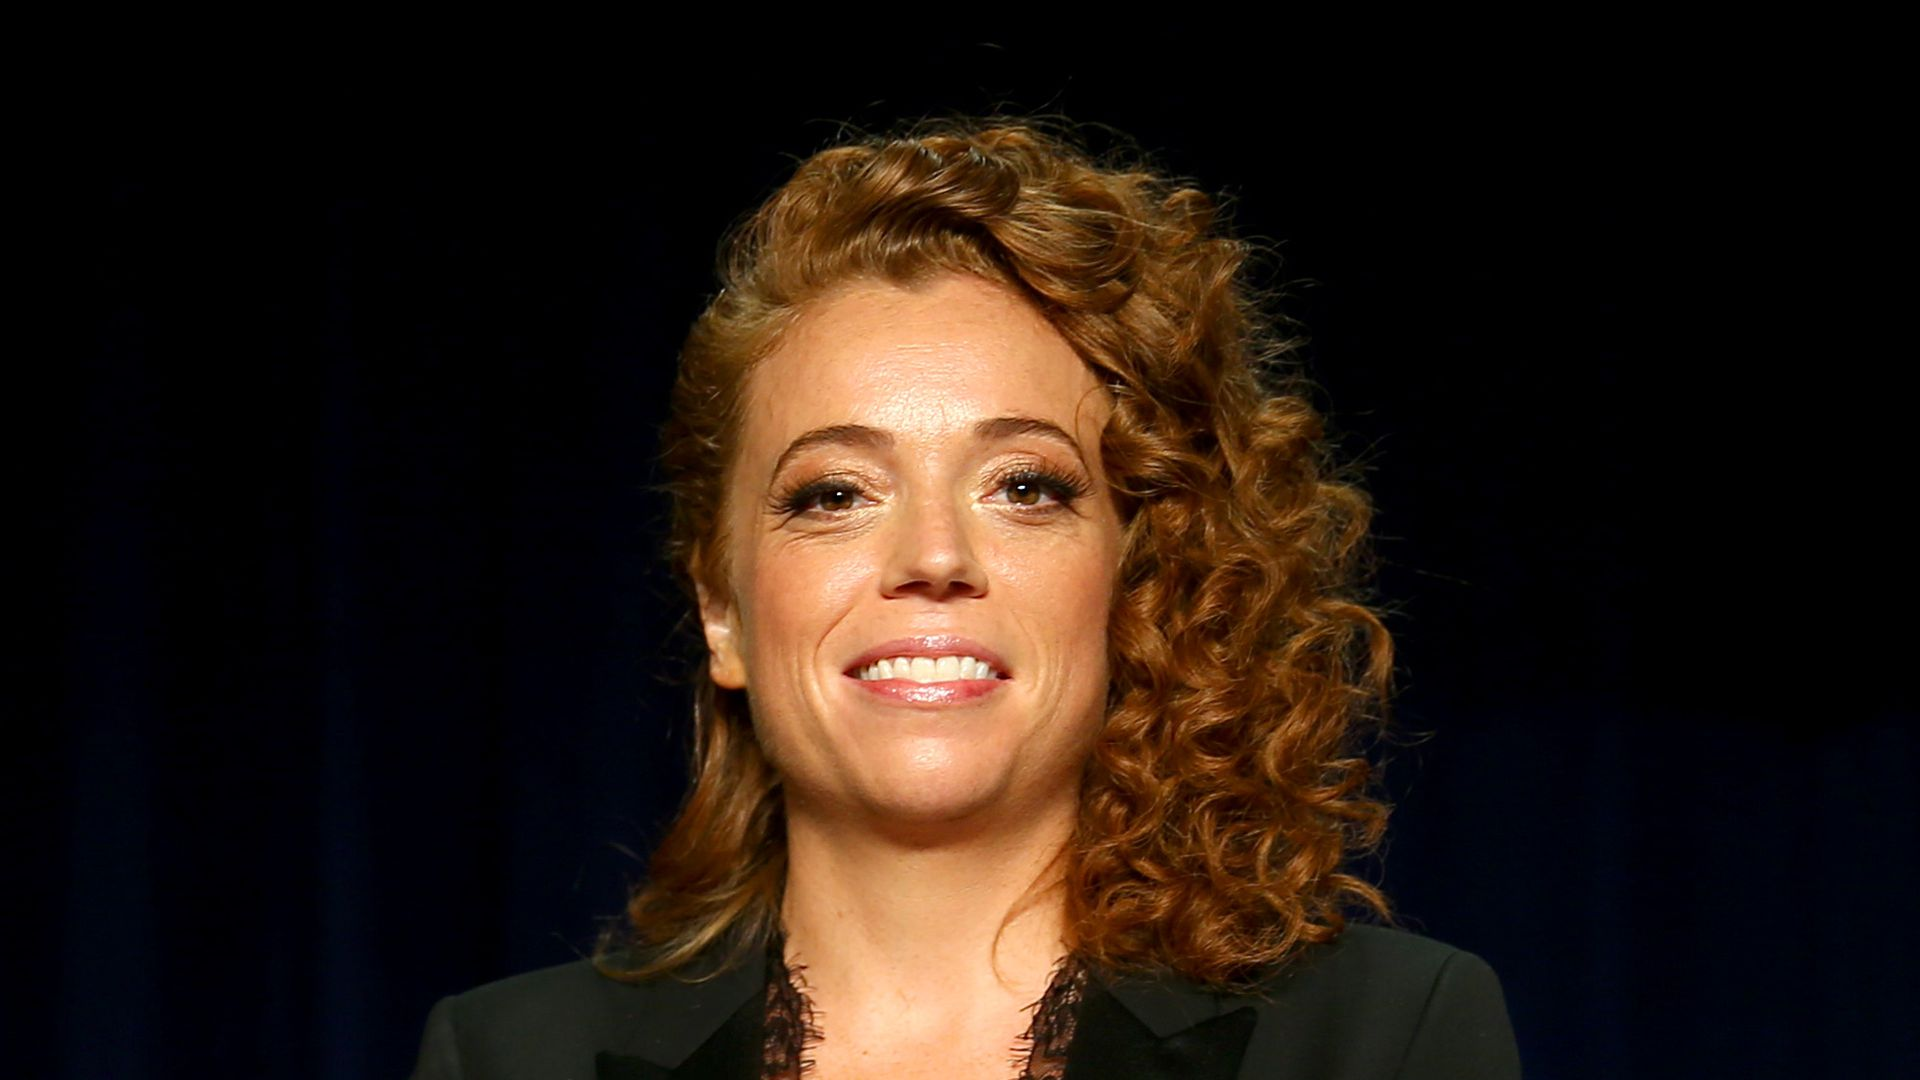 Comedian Michelle Wolf smiles at the camera